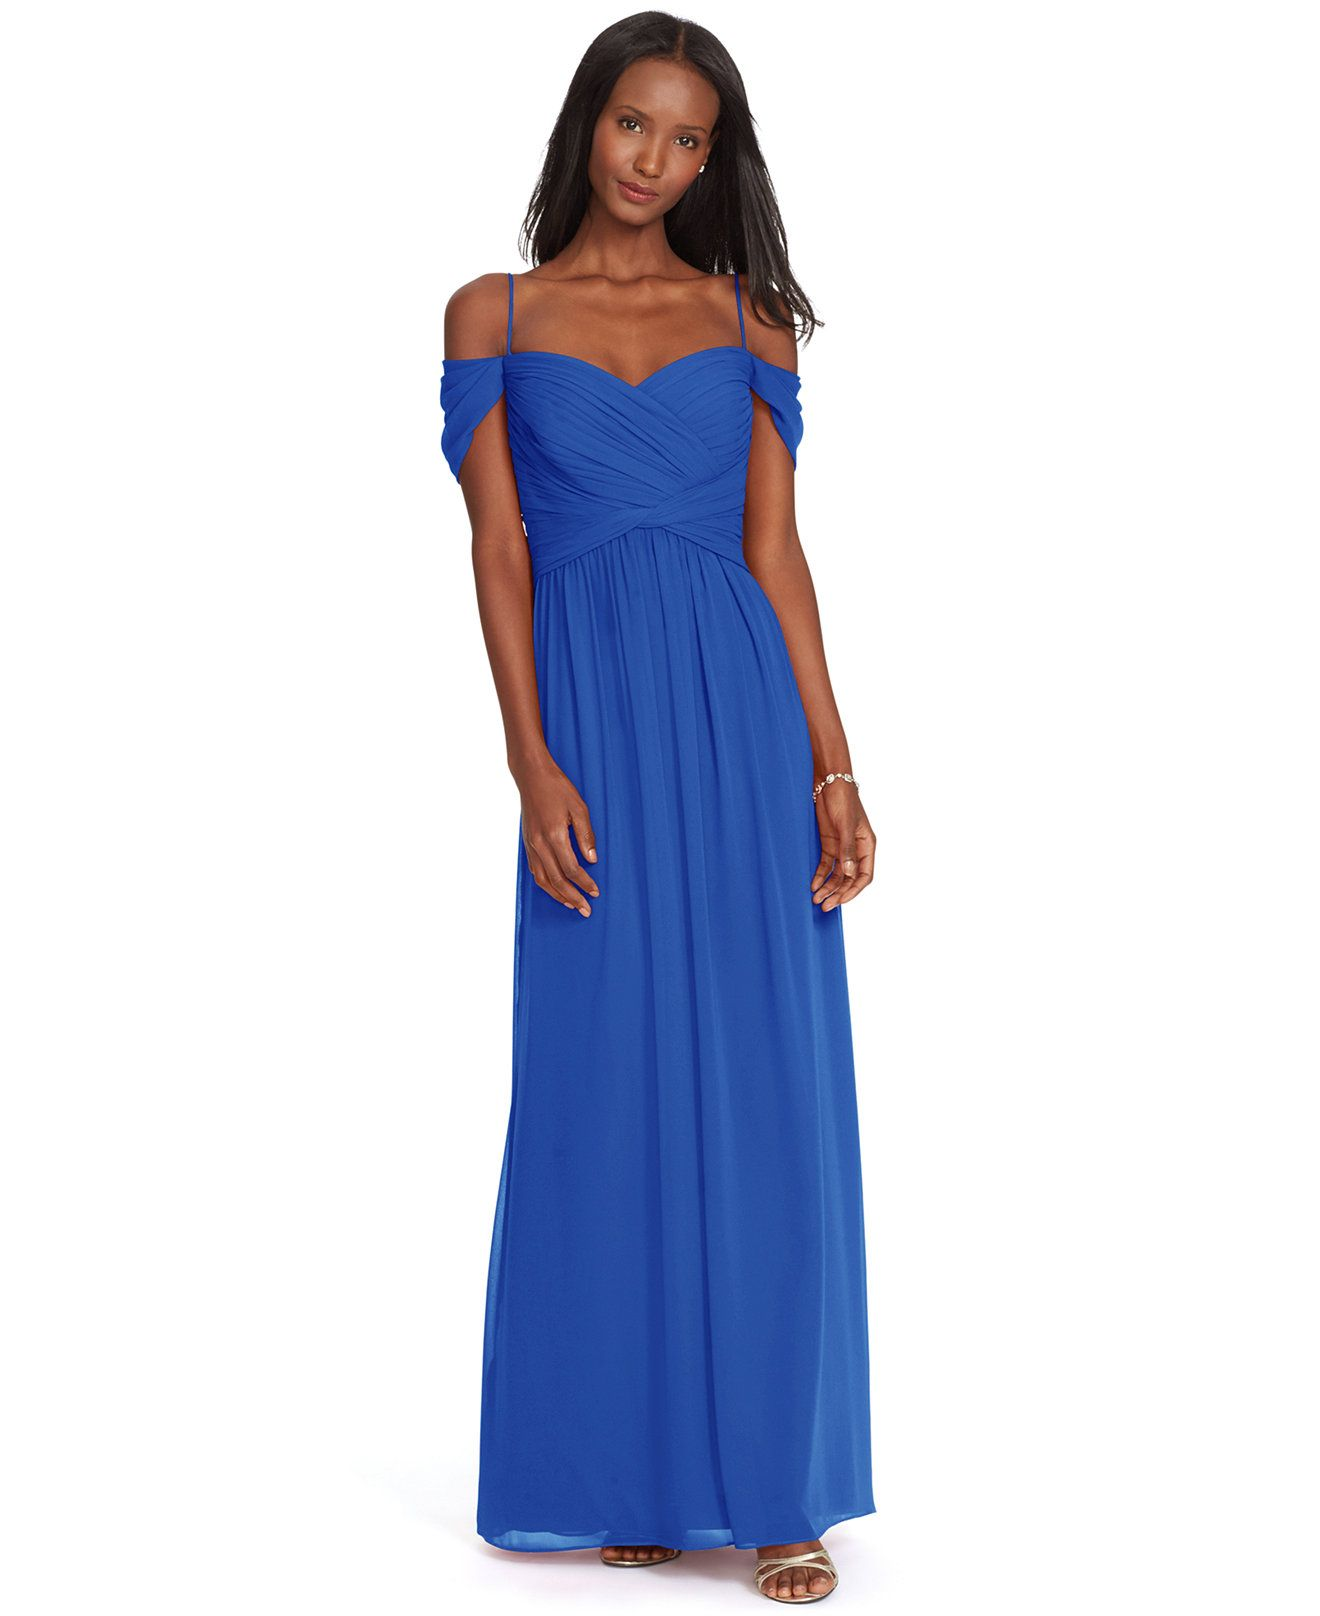 140 lauren ralph lauren off the shoulder georgette gown dresses lauren ralph lauren off the shoulder georgette gown dresses women macys ombrellifo Images